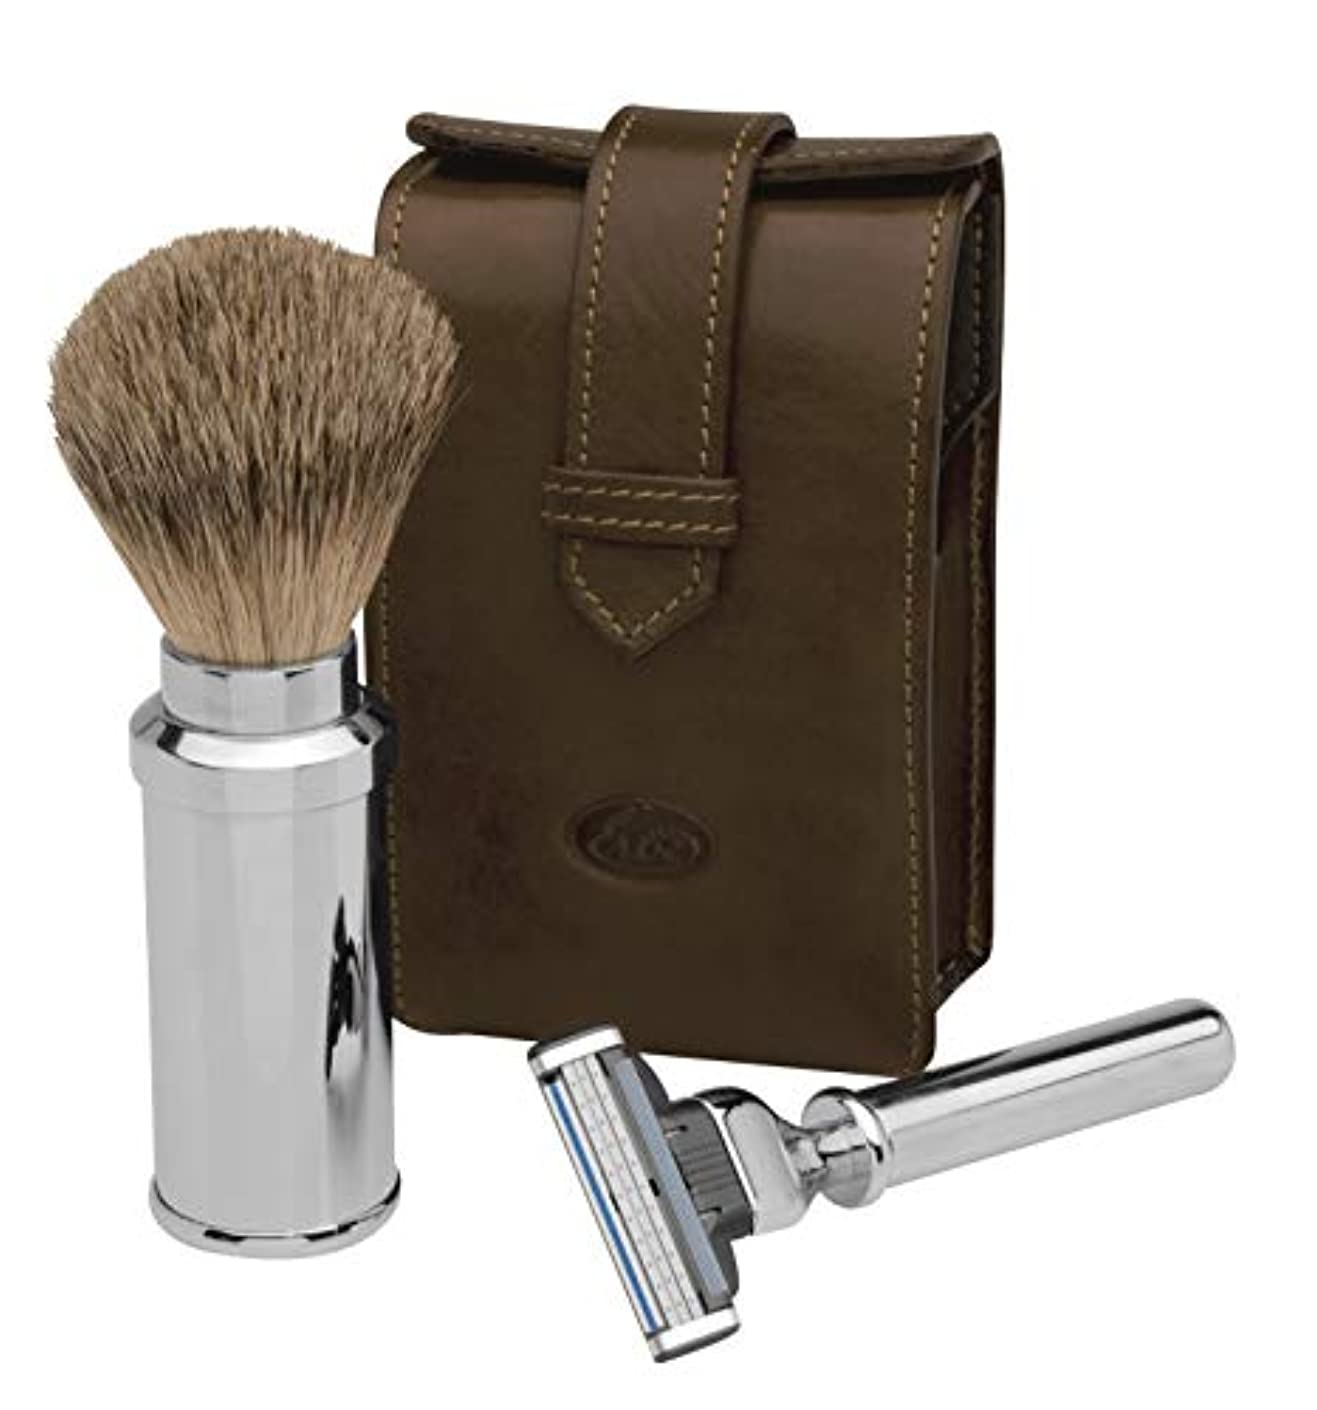 火曜日おめでとうブレンドErbe Travel Shaving Set, Razor and Shaving Brush in brown Leather Pocket